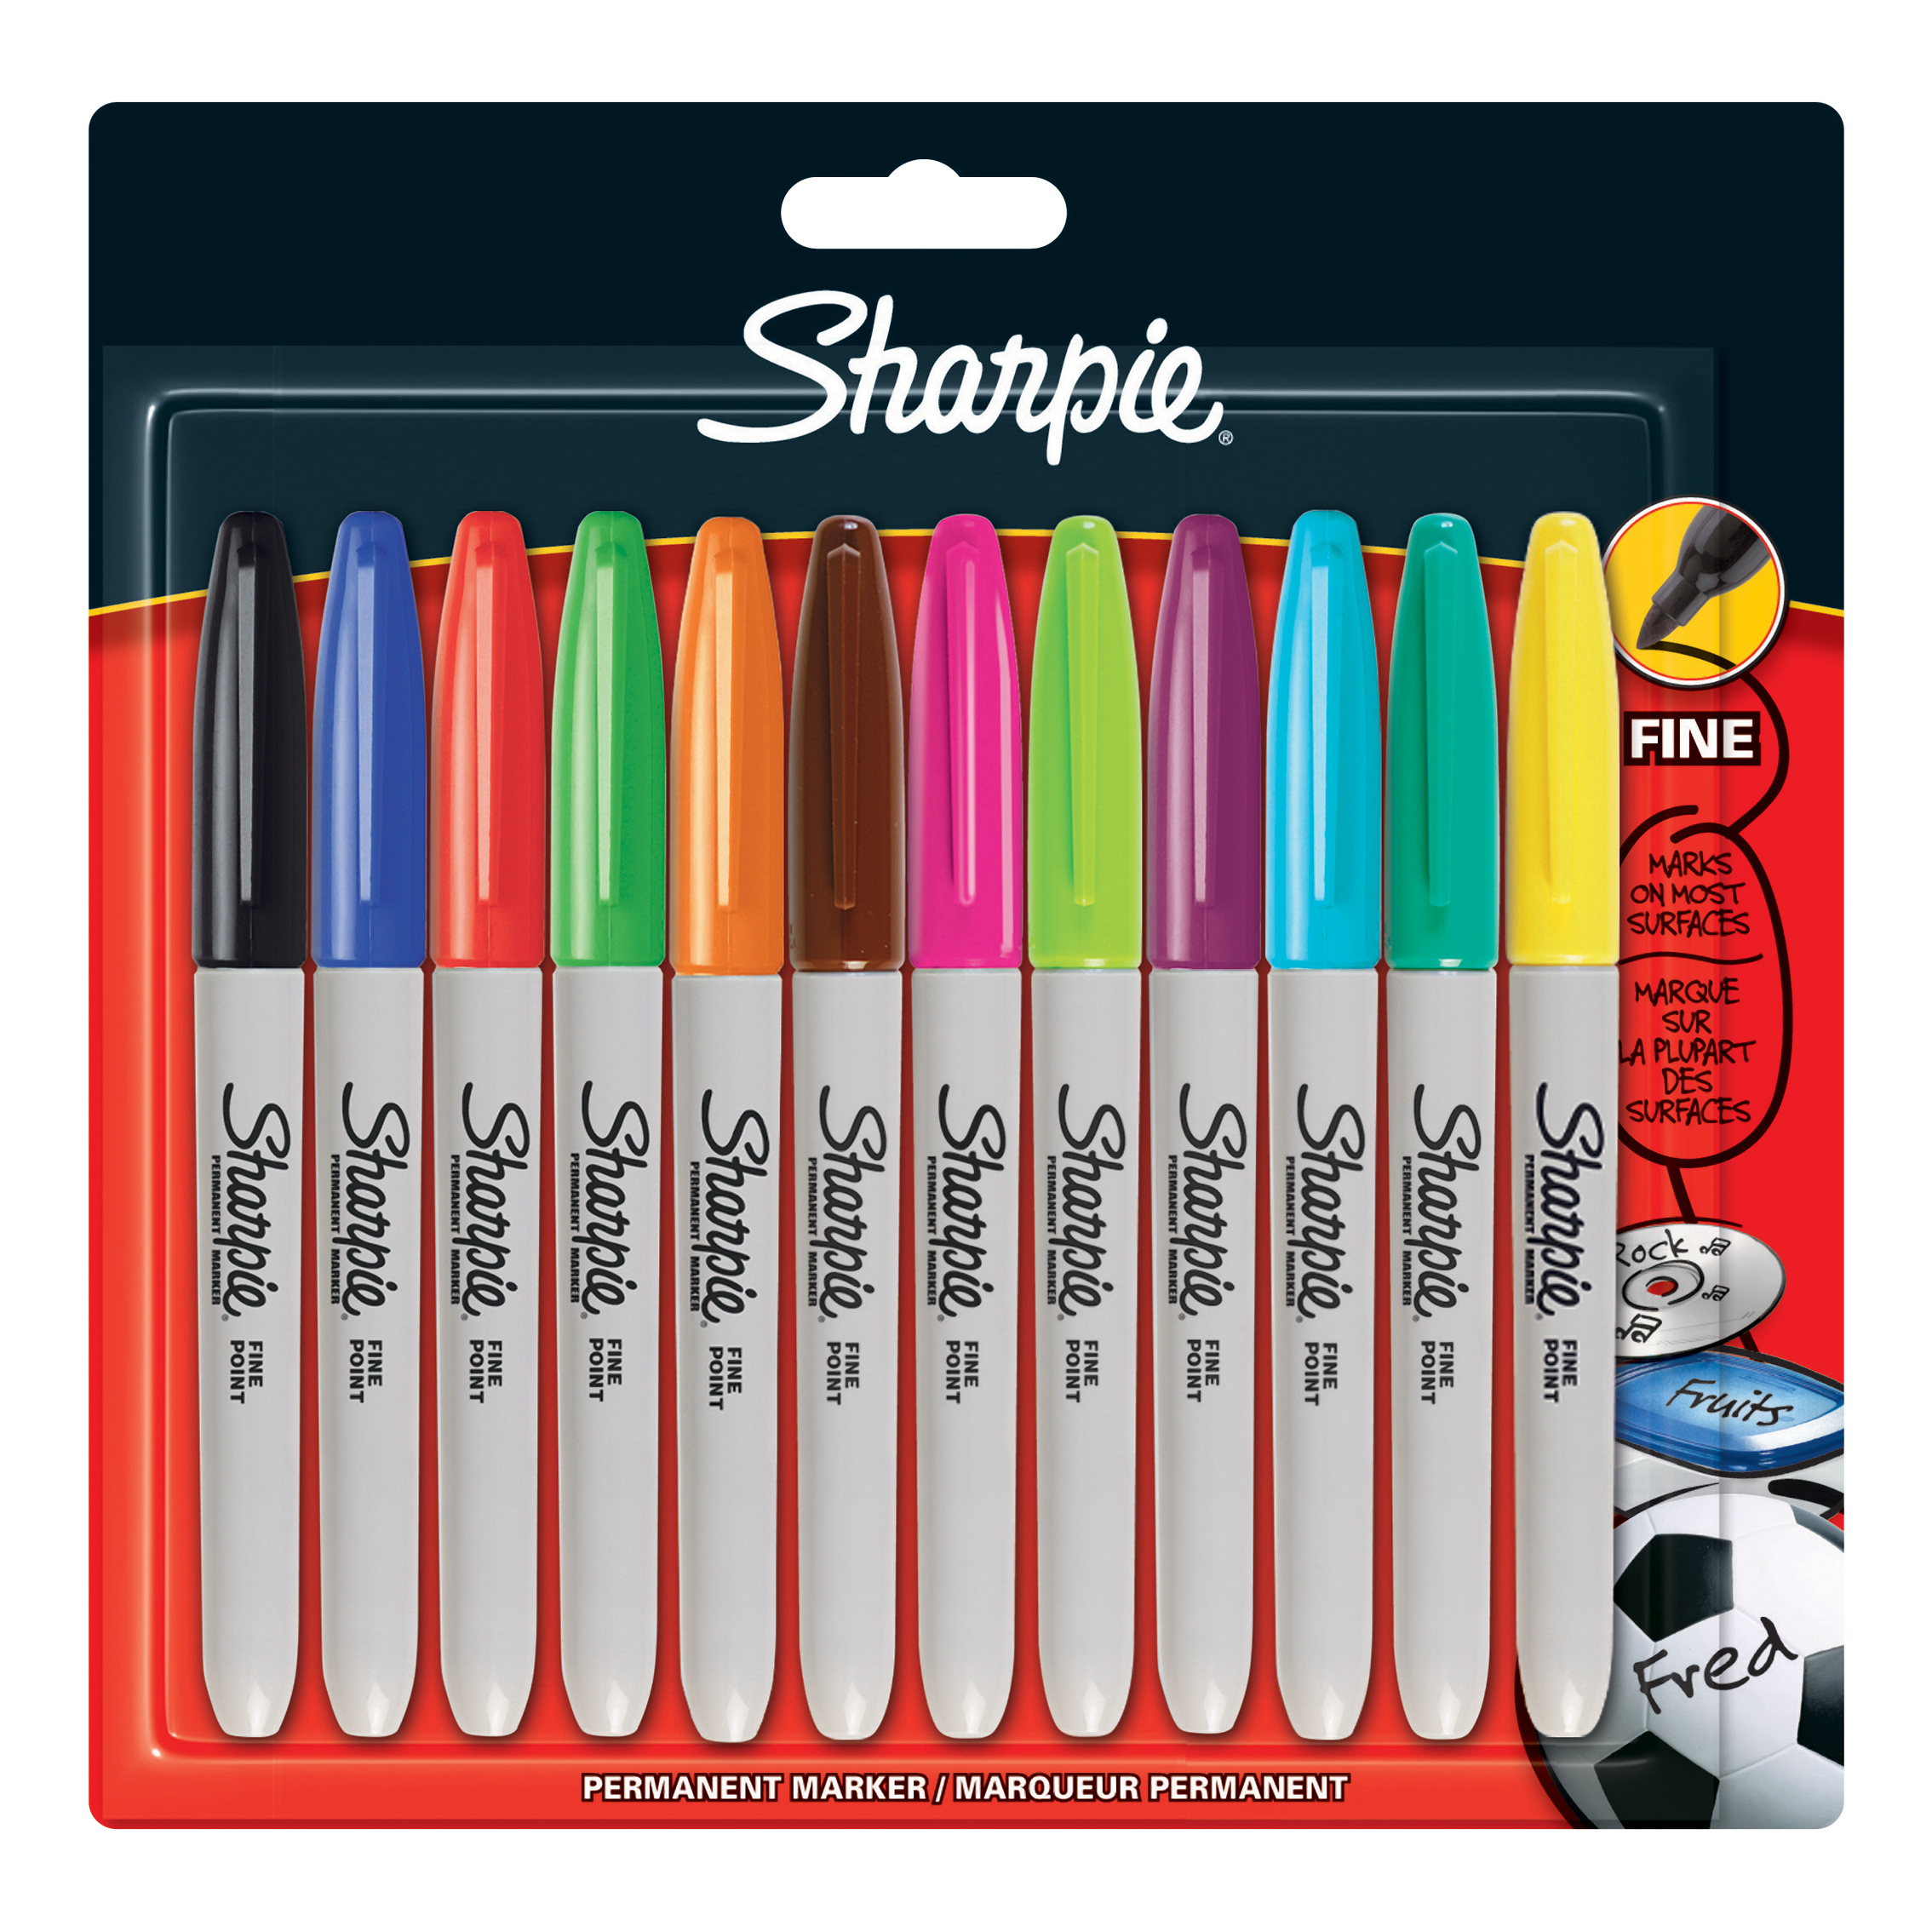 Sharpie Permanent Marker Fine Tip 0.9mm Line Assorted Ref 1986438 [Wallet 12]